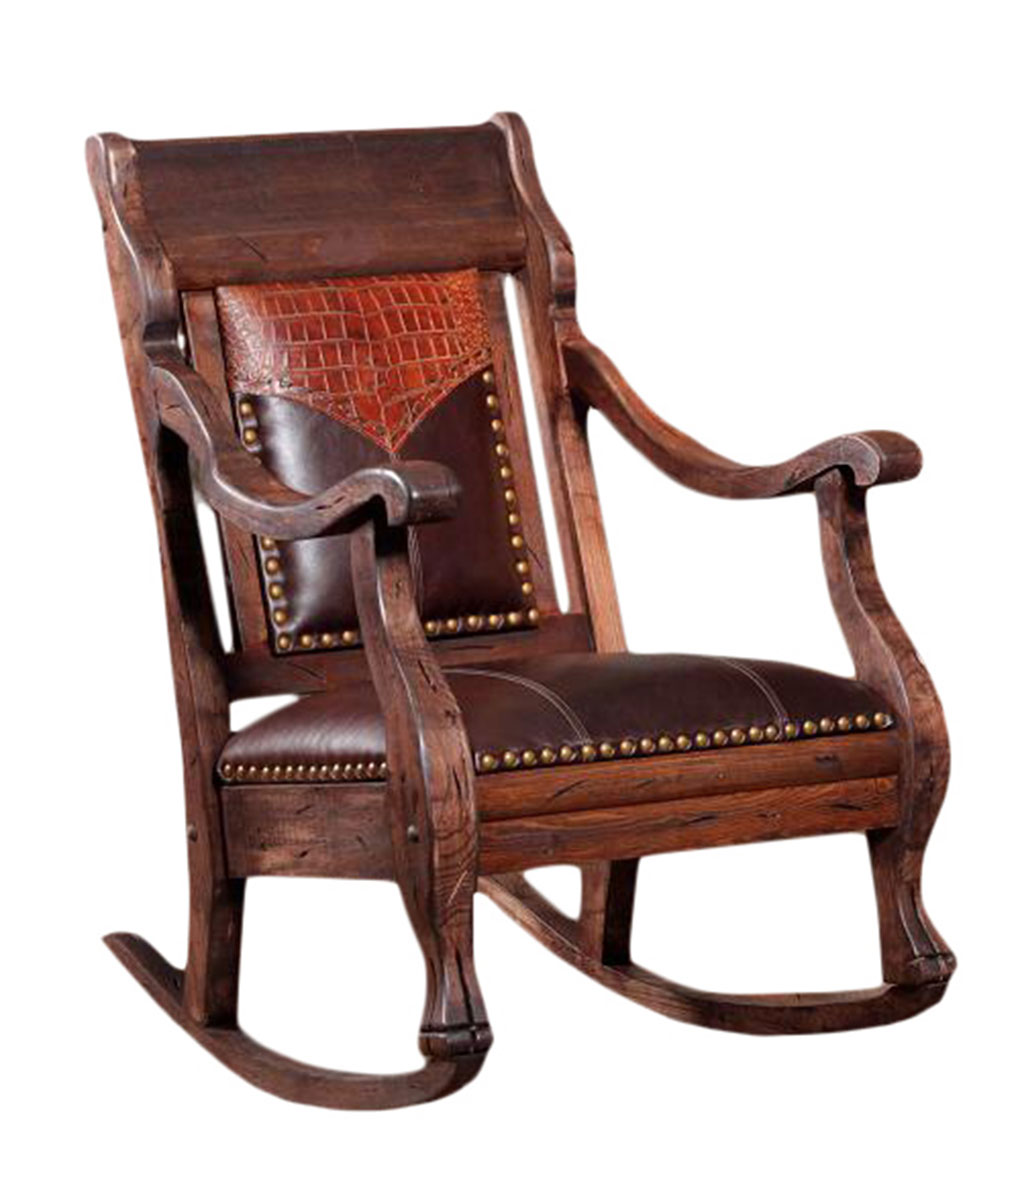 Cowhide and Leather Rocker  RusticArtistrycom